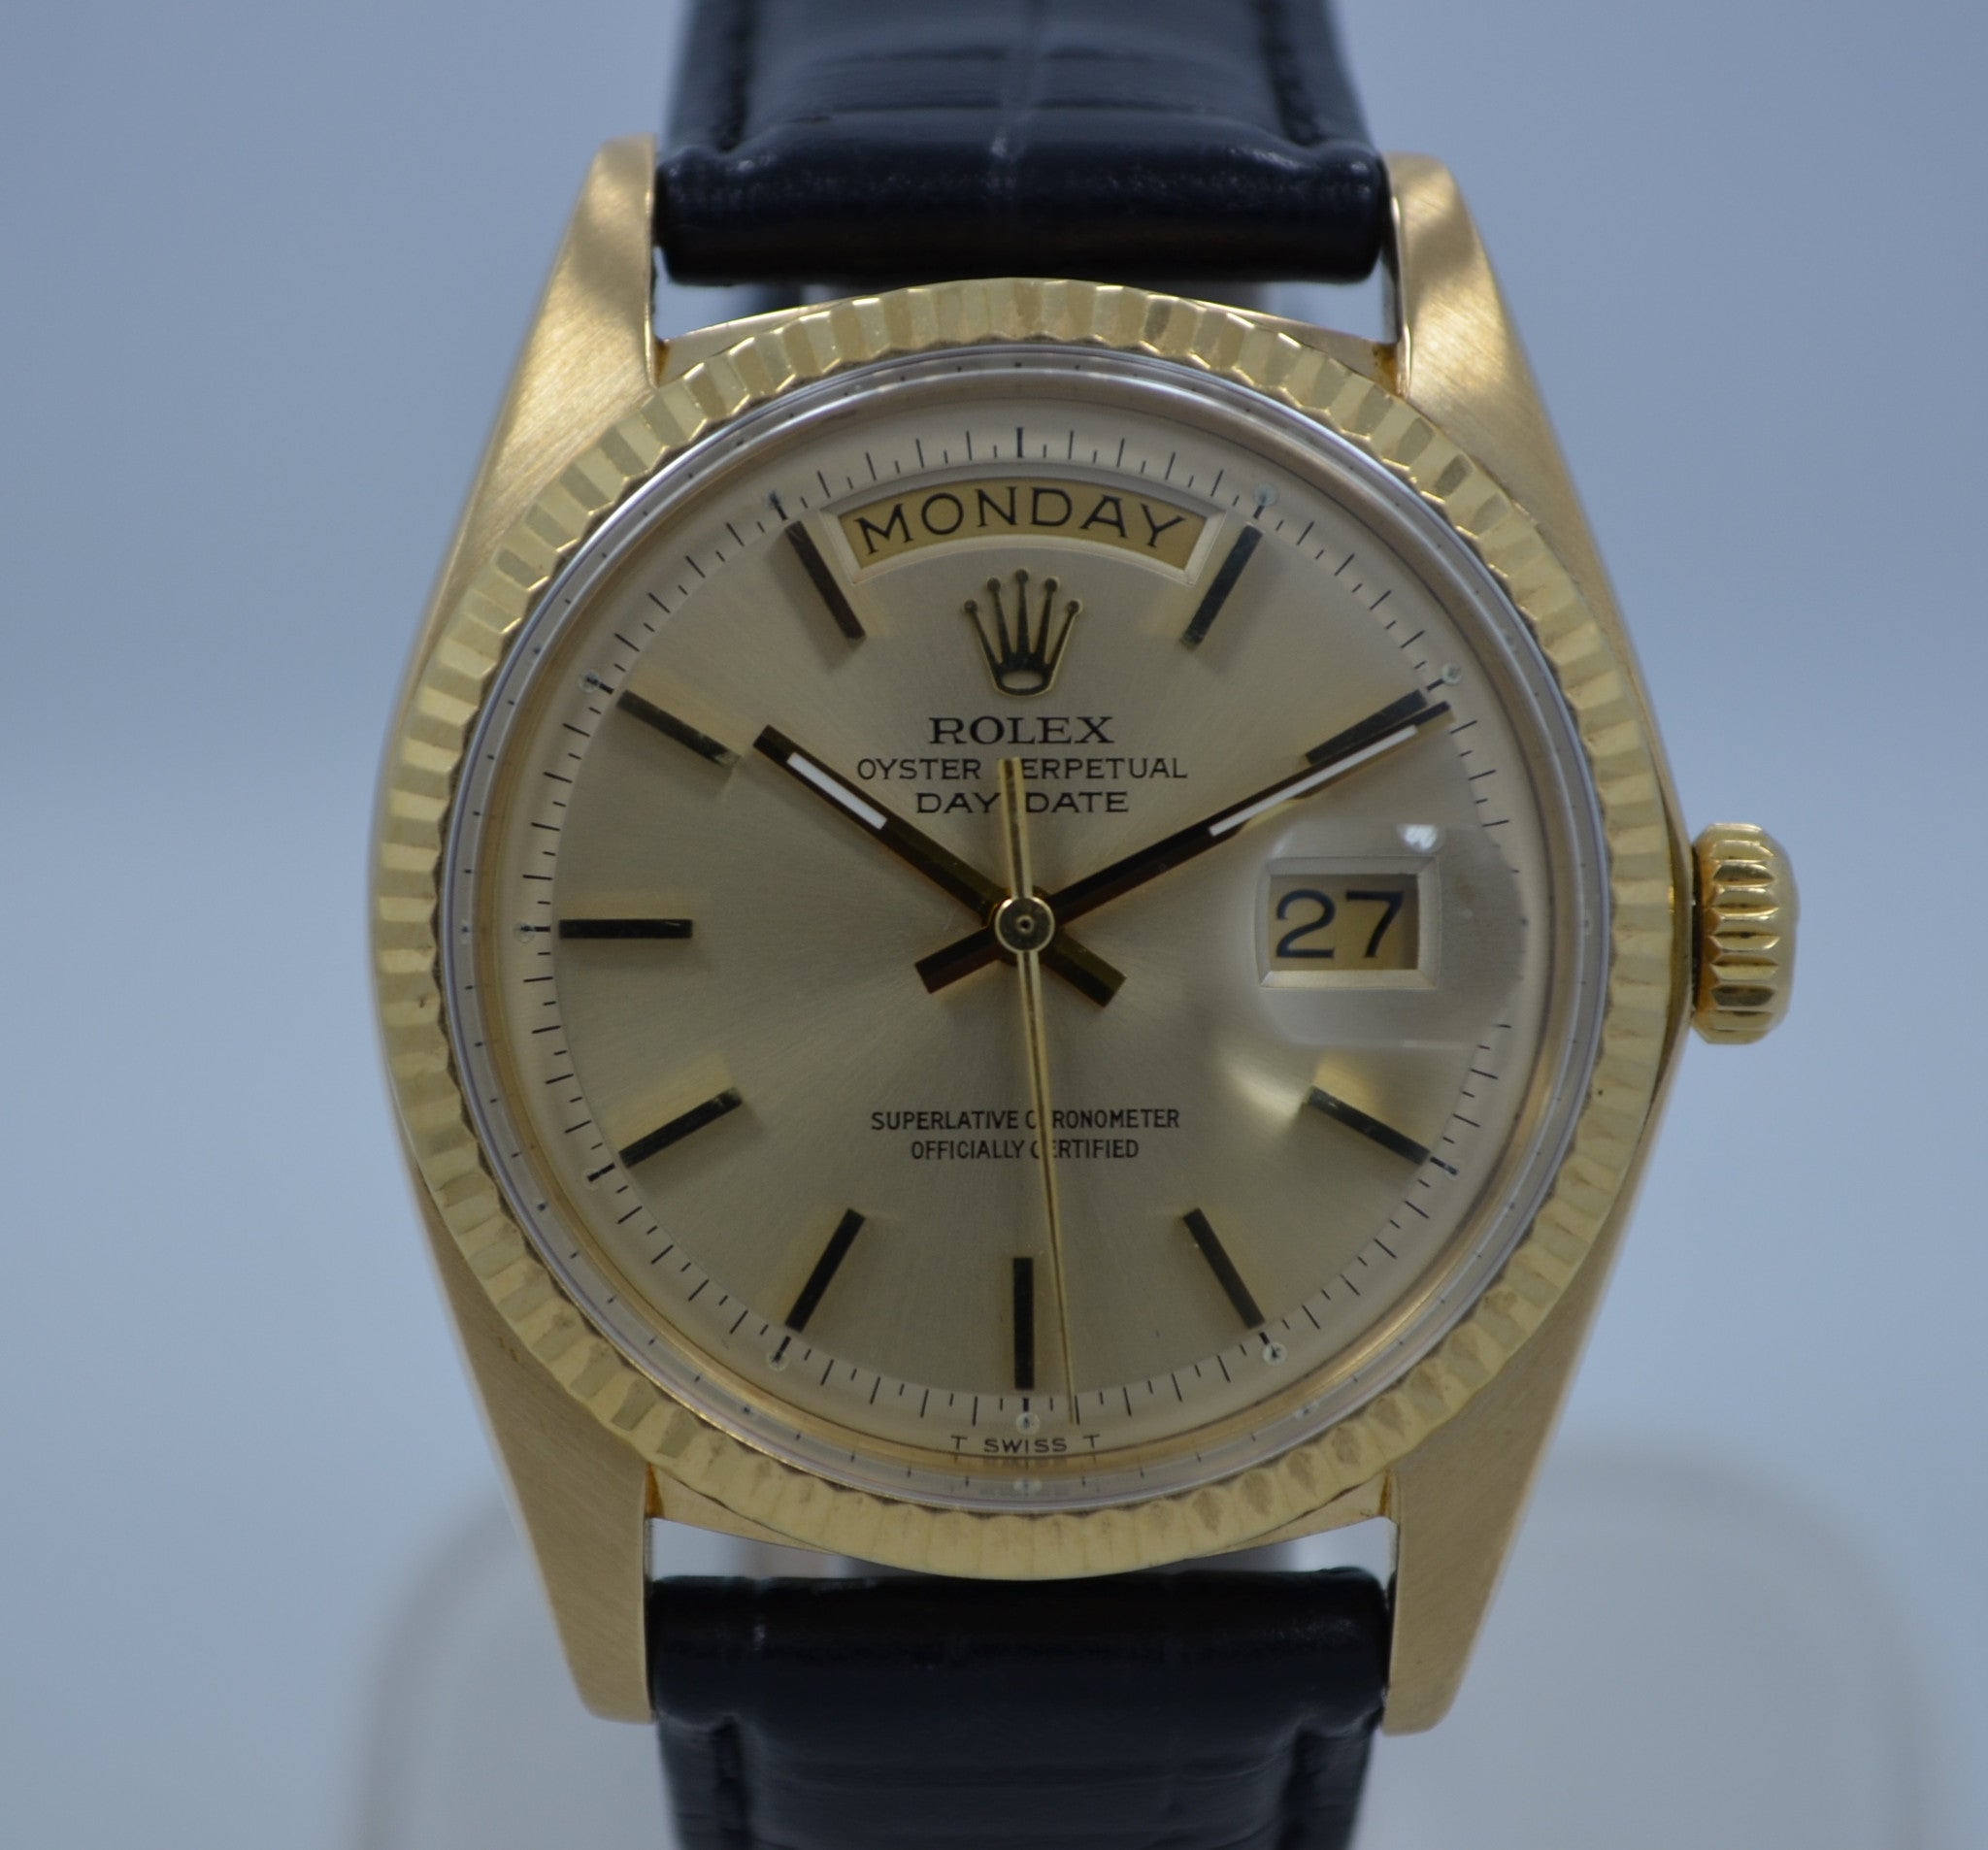 Vintage Rolex 1803 President Day Date 3.6 Mil 1972 18K Yellow Gold Wristwatch - Hashtag Watch Company